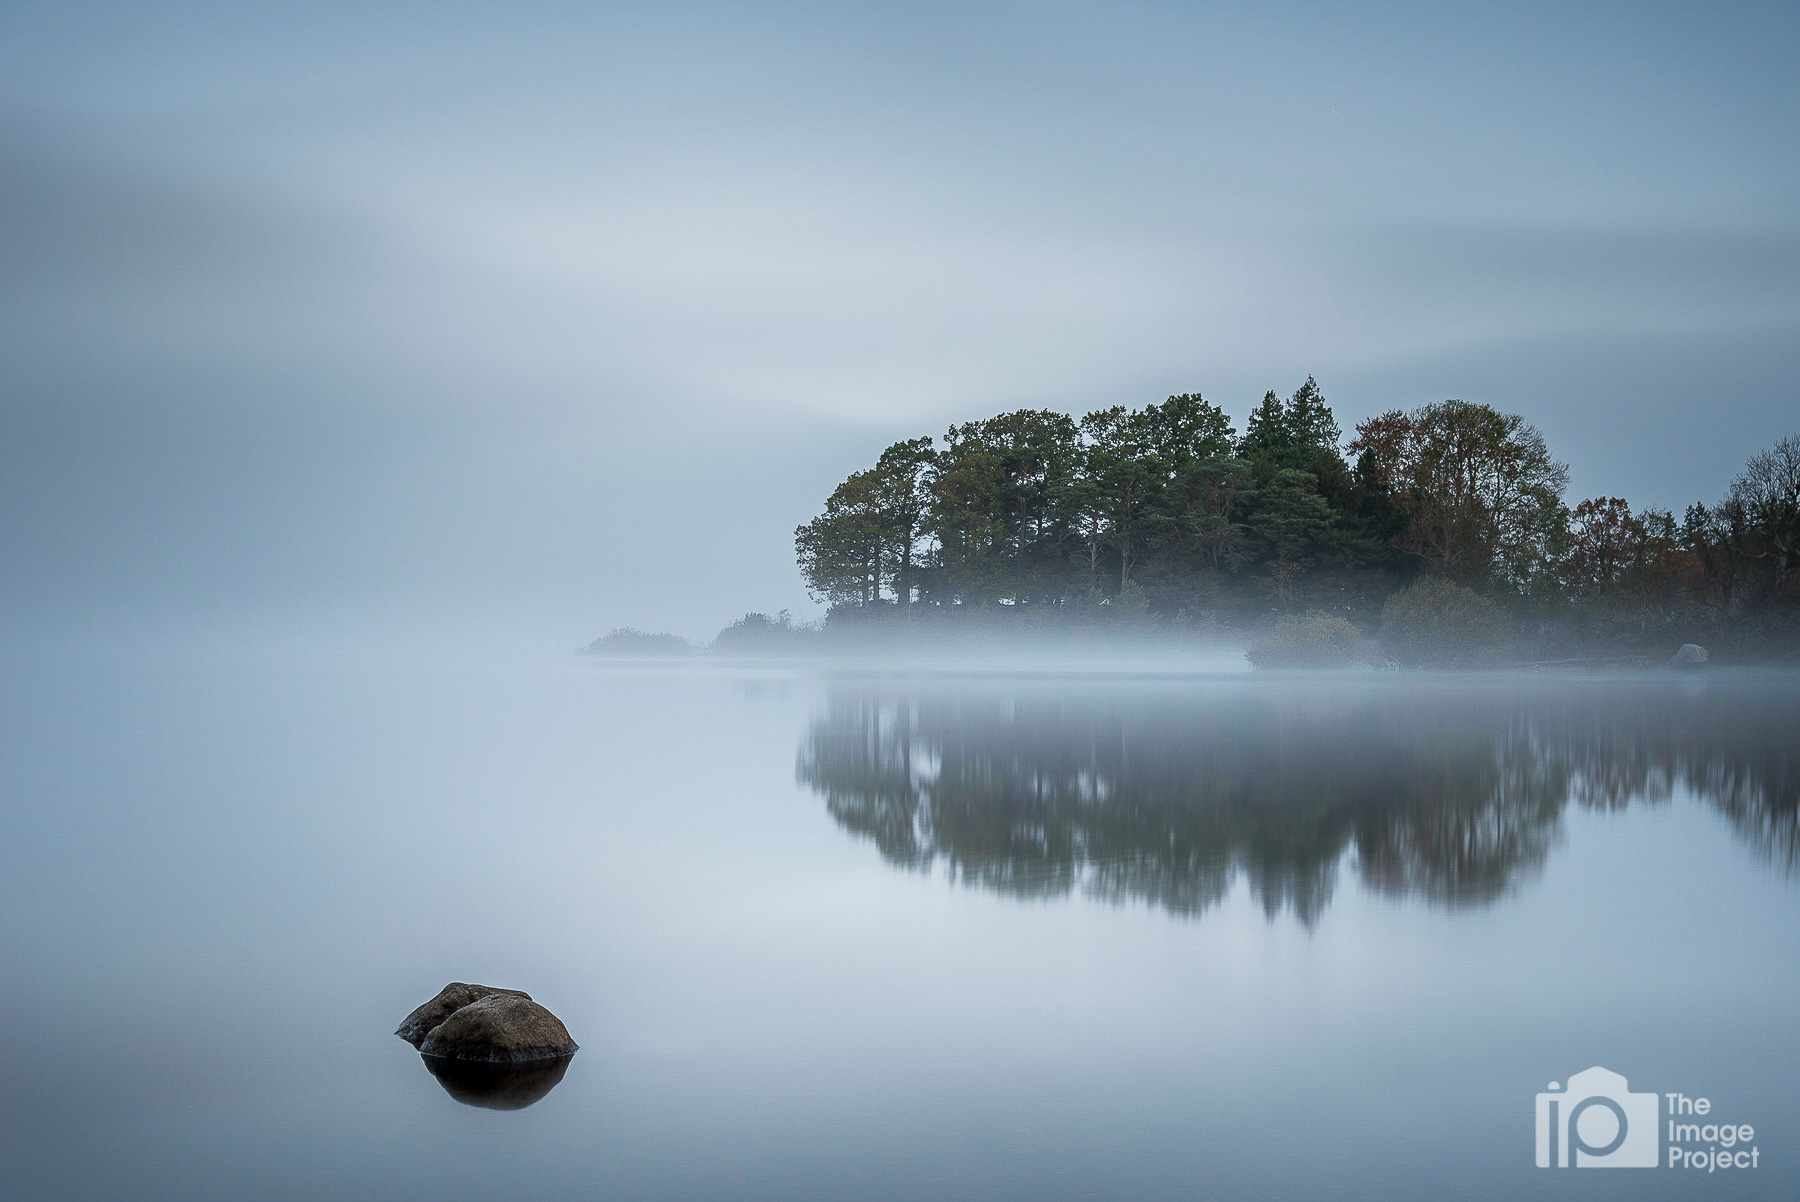 Early morning mist at Derwentwater